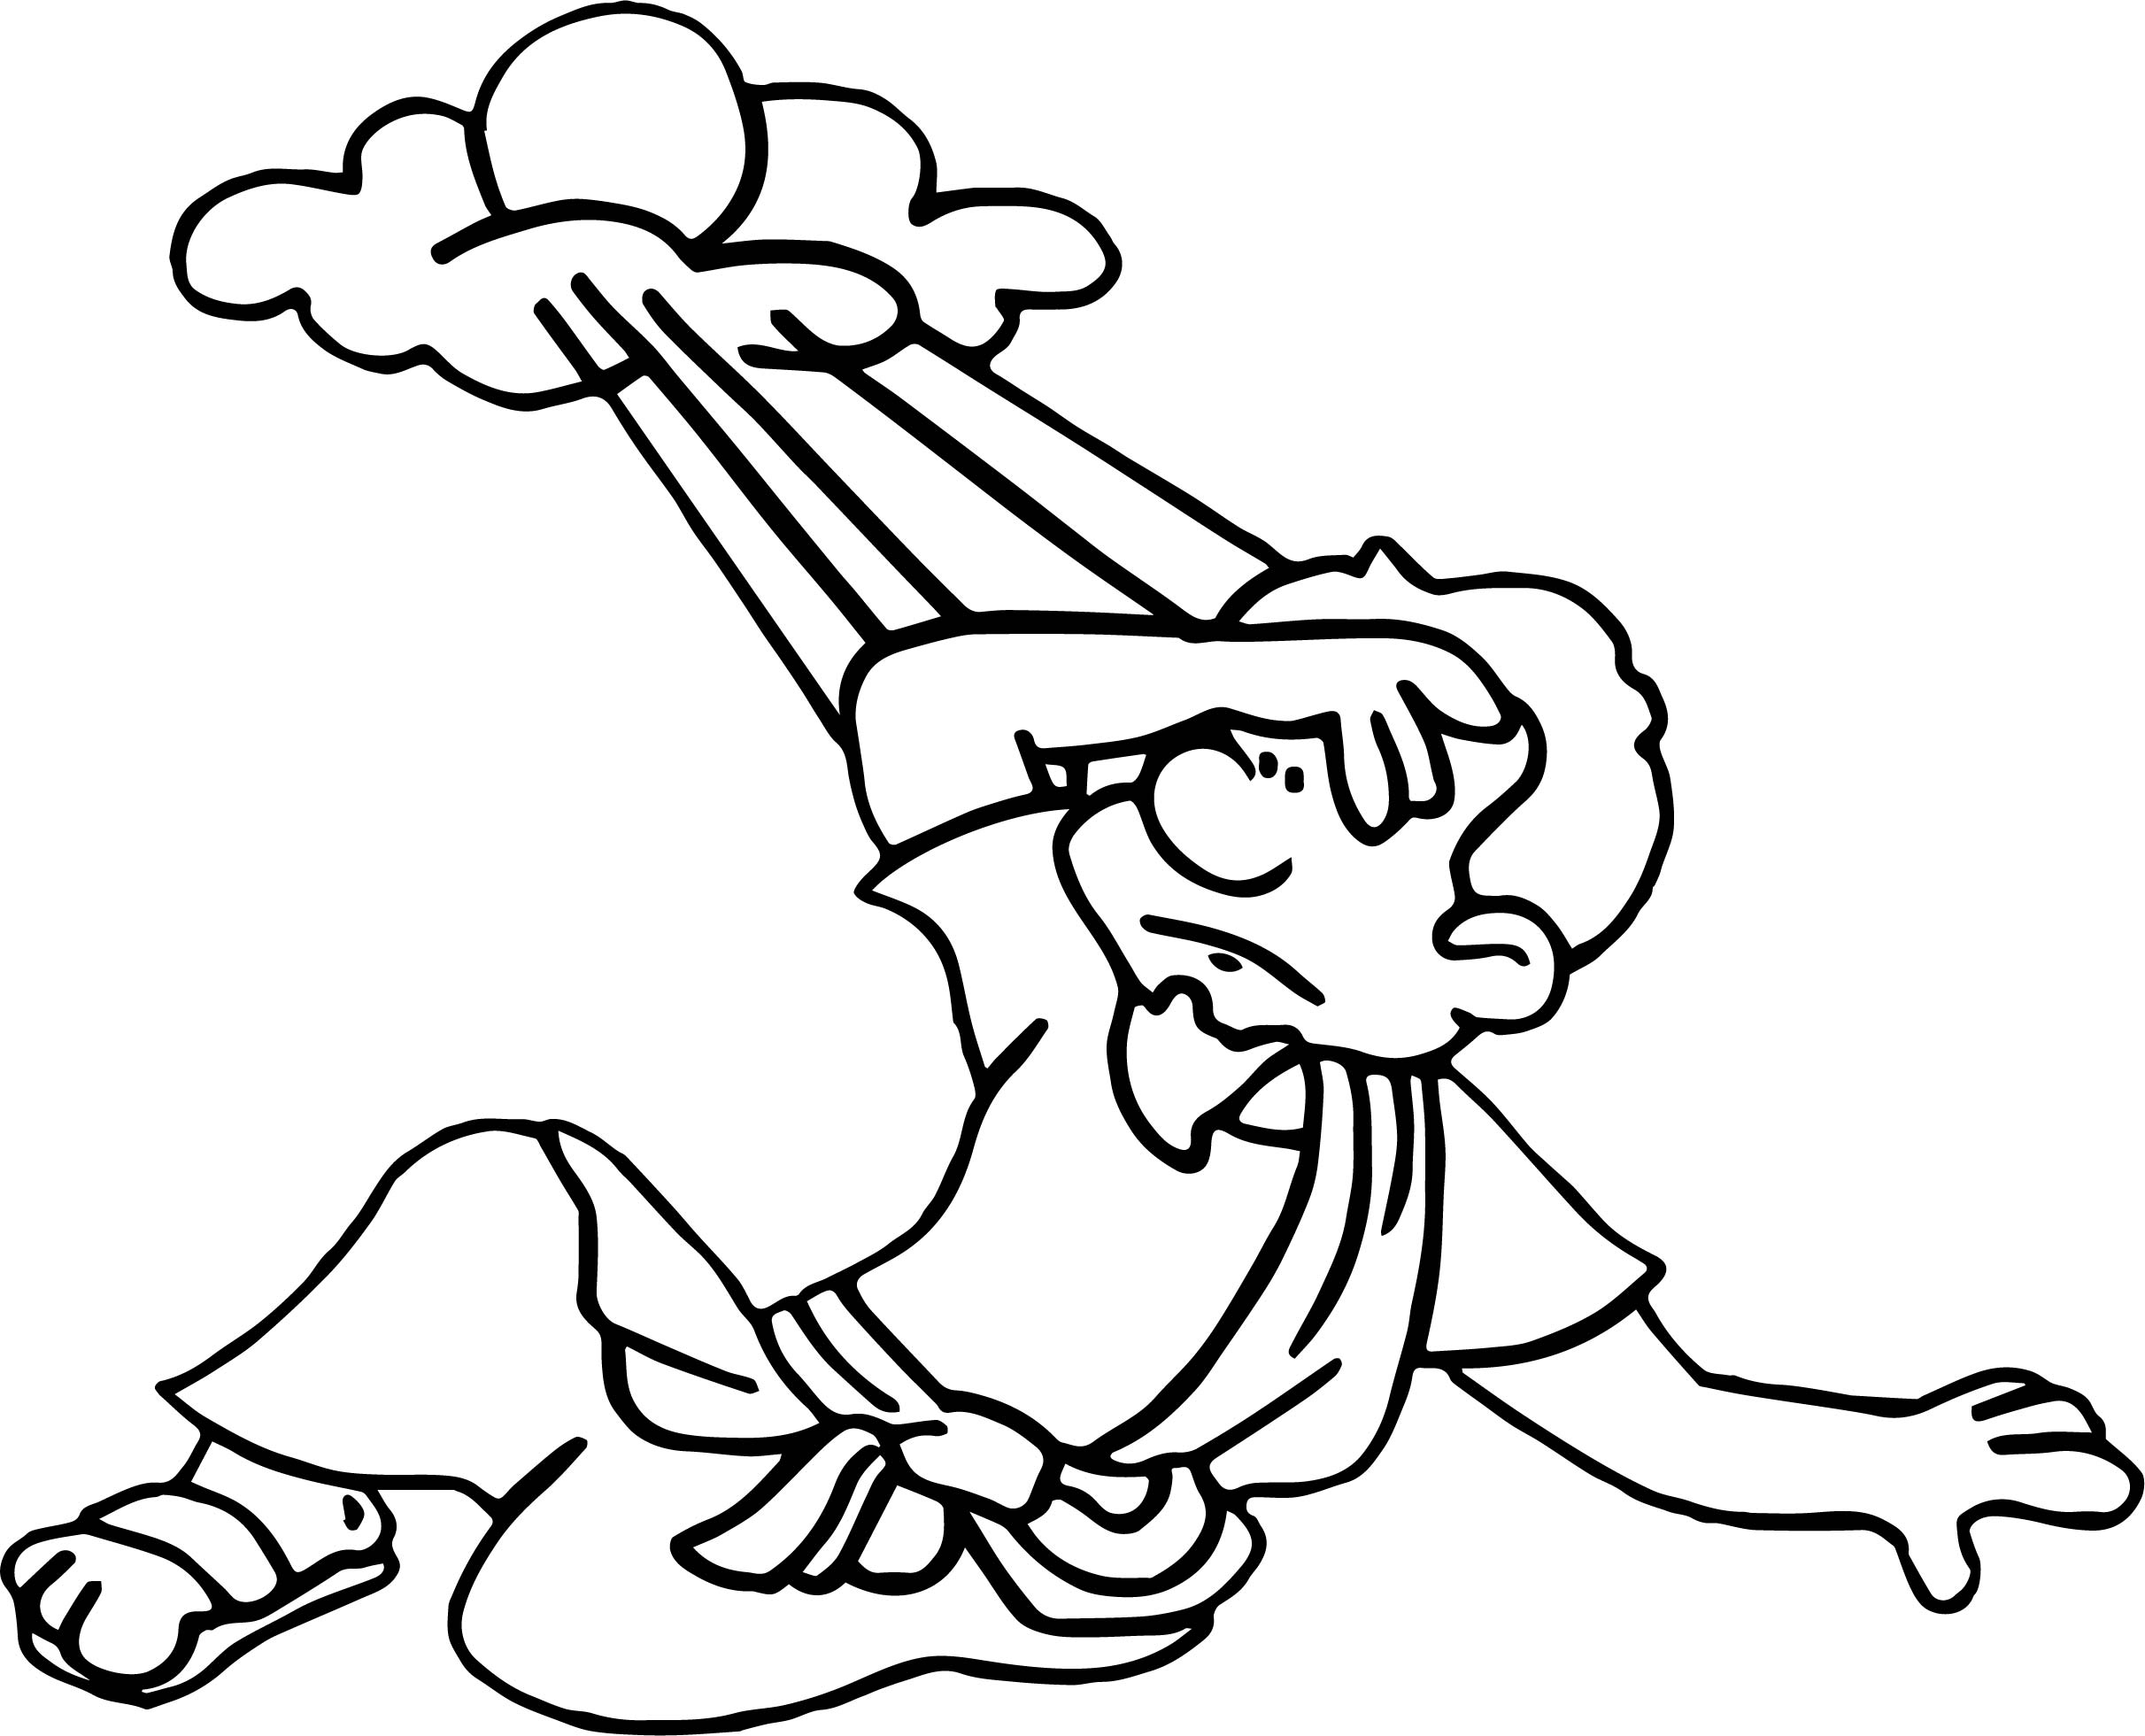 Apostle paul cloud shine coloring page for Apostle paul coloring page